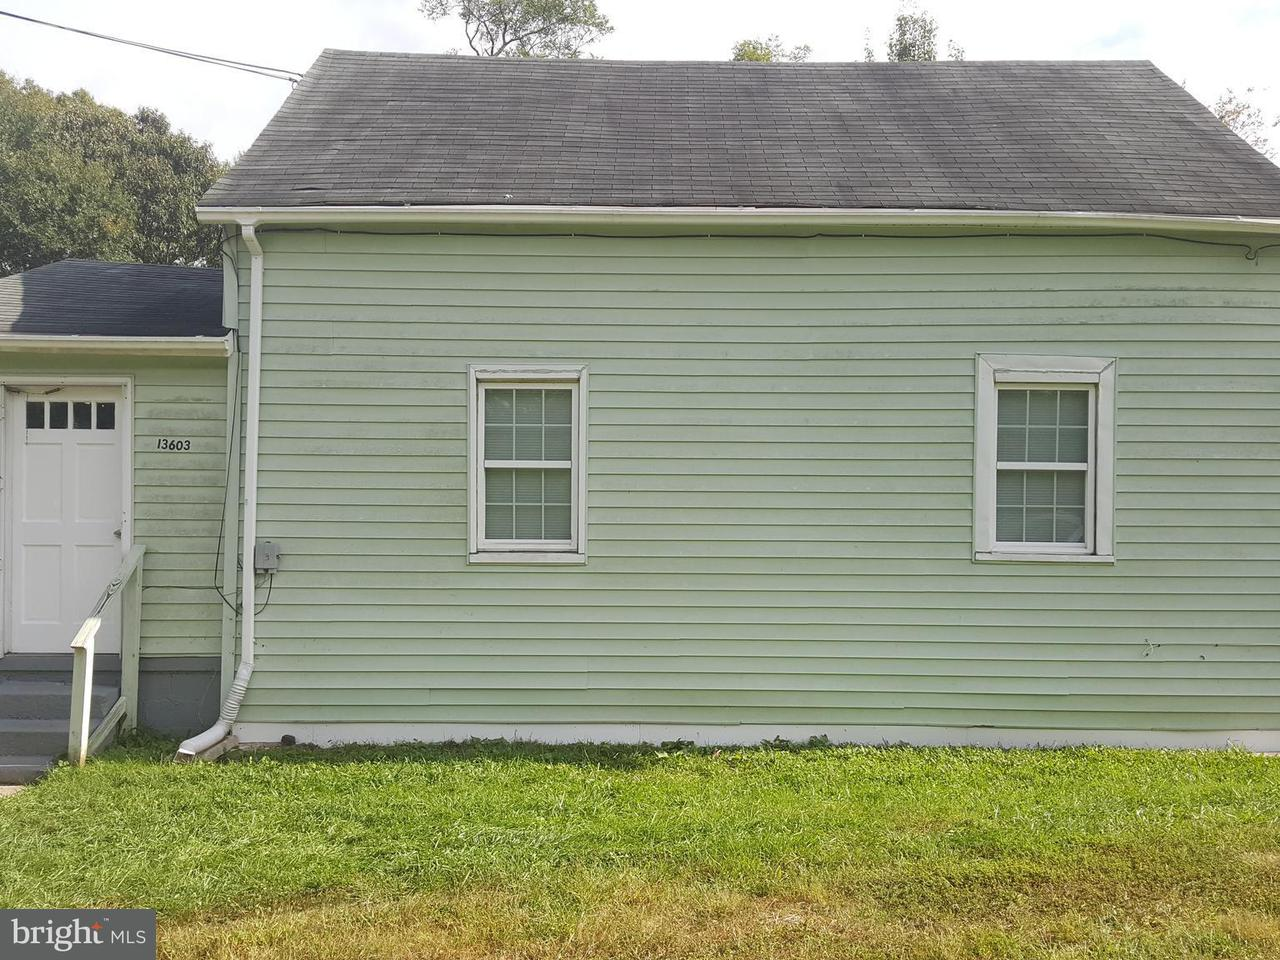 Other Residential for Rent at 13603 Old Indian Head Rd Brandywine, Maryland 20613 United States